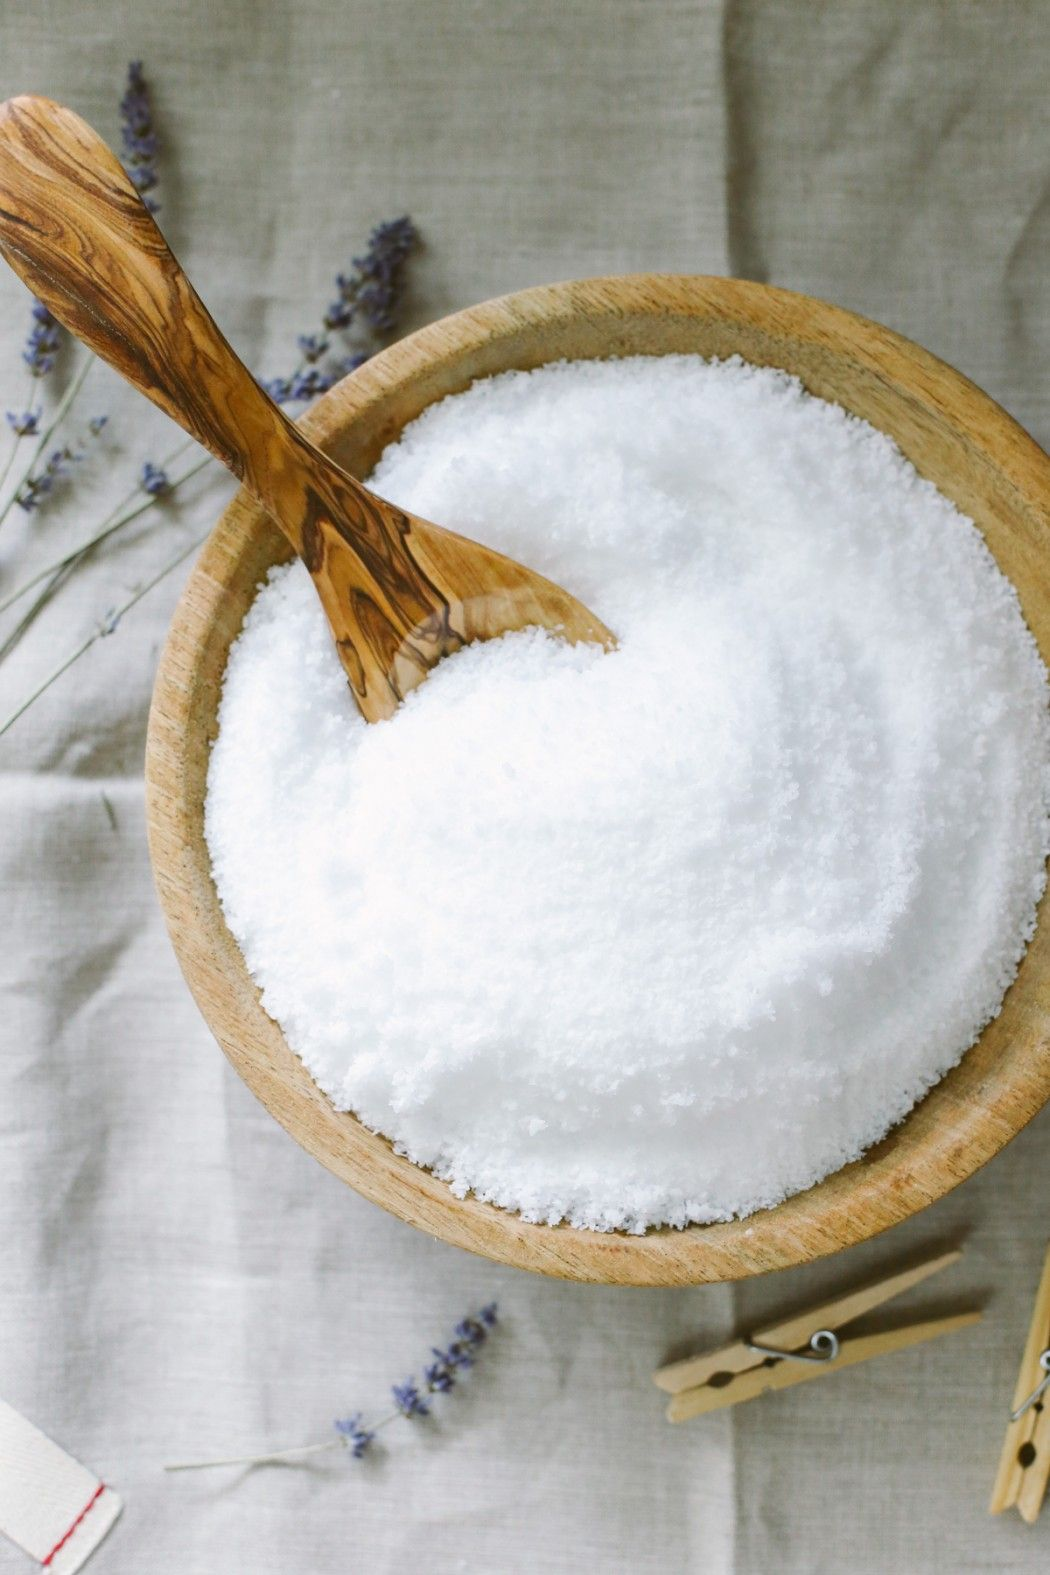 A twoingredient homemade fabric softener and scent